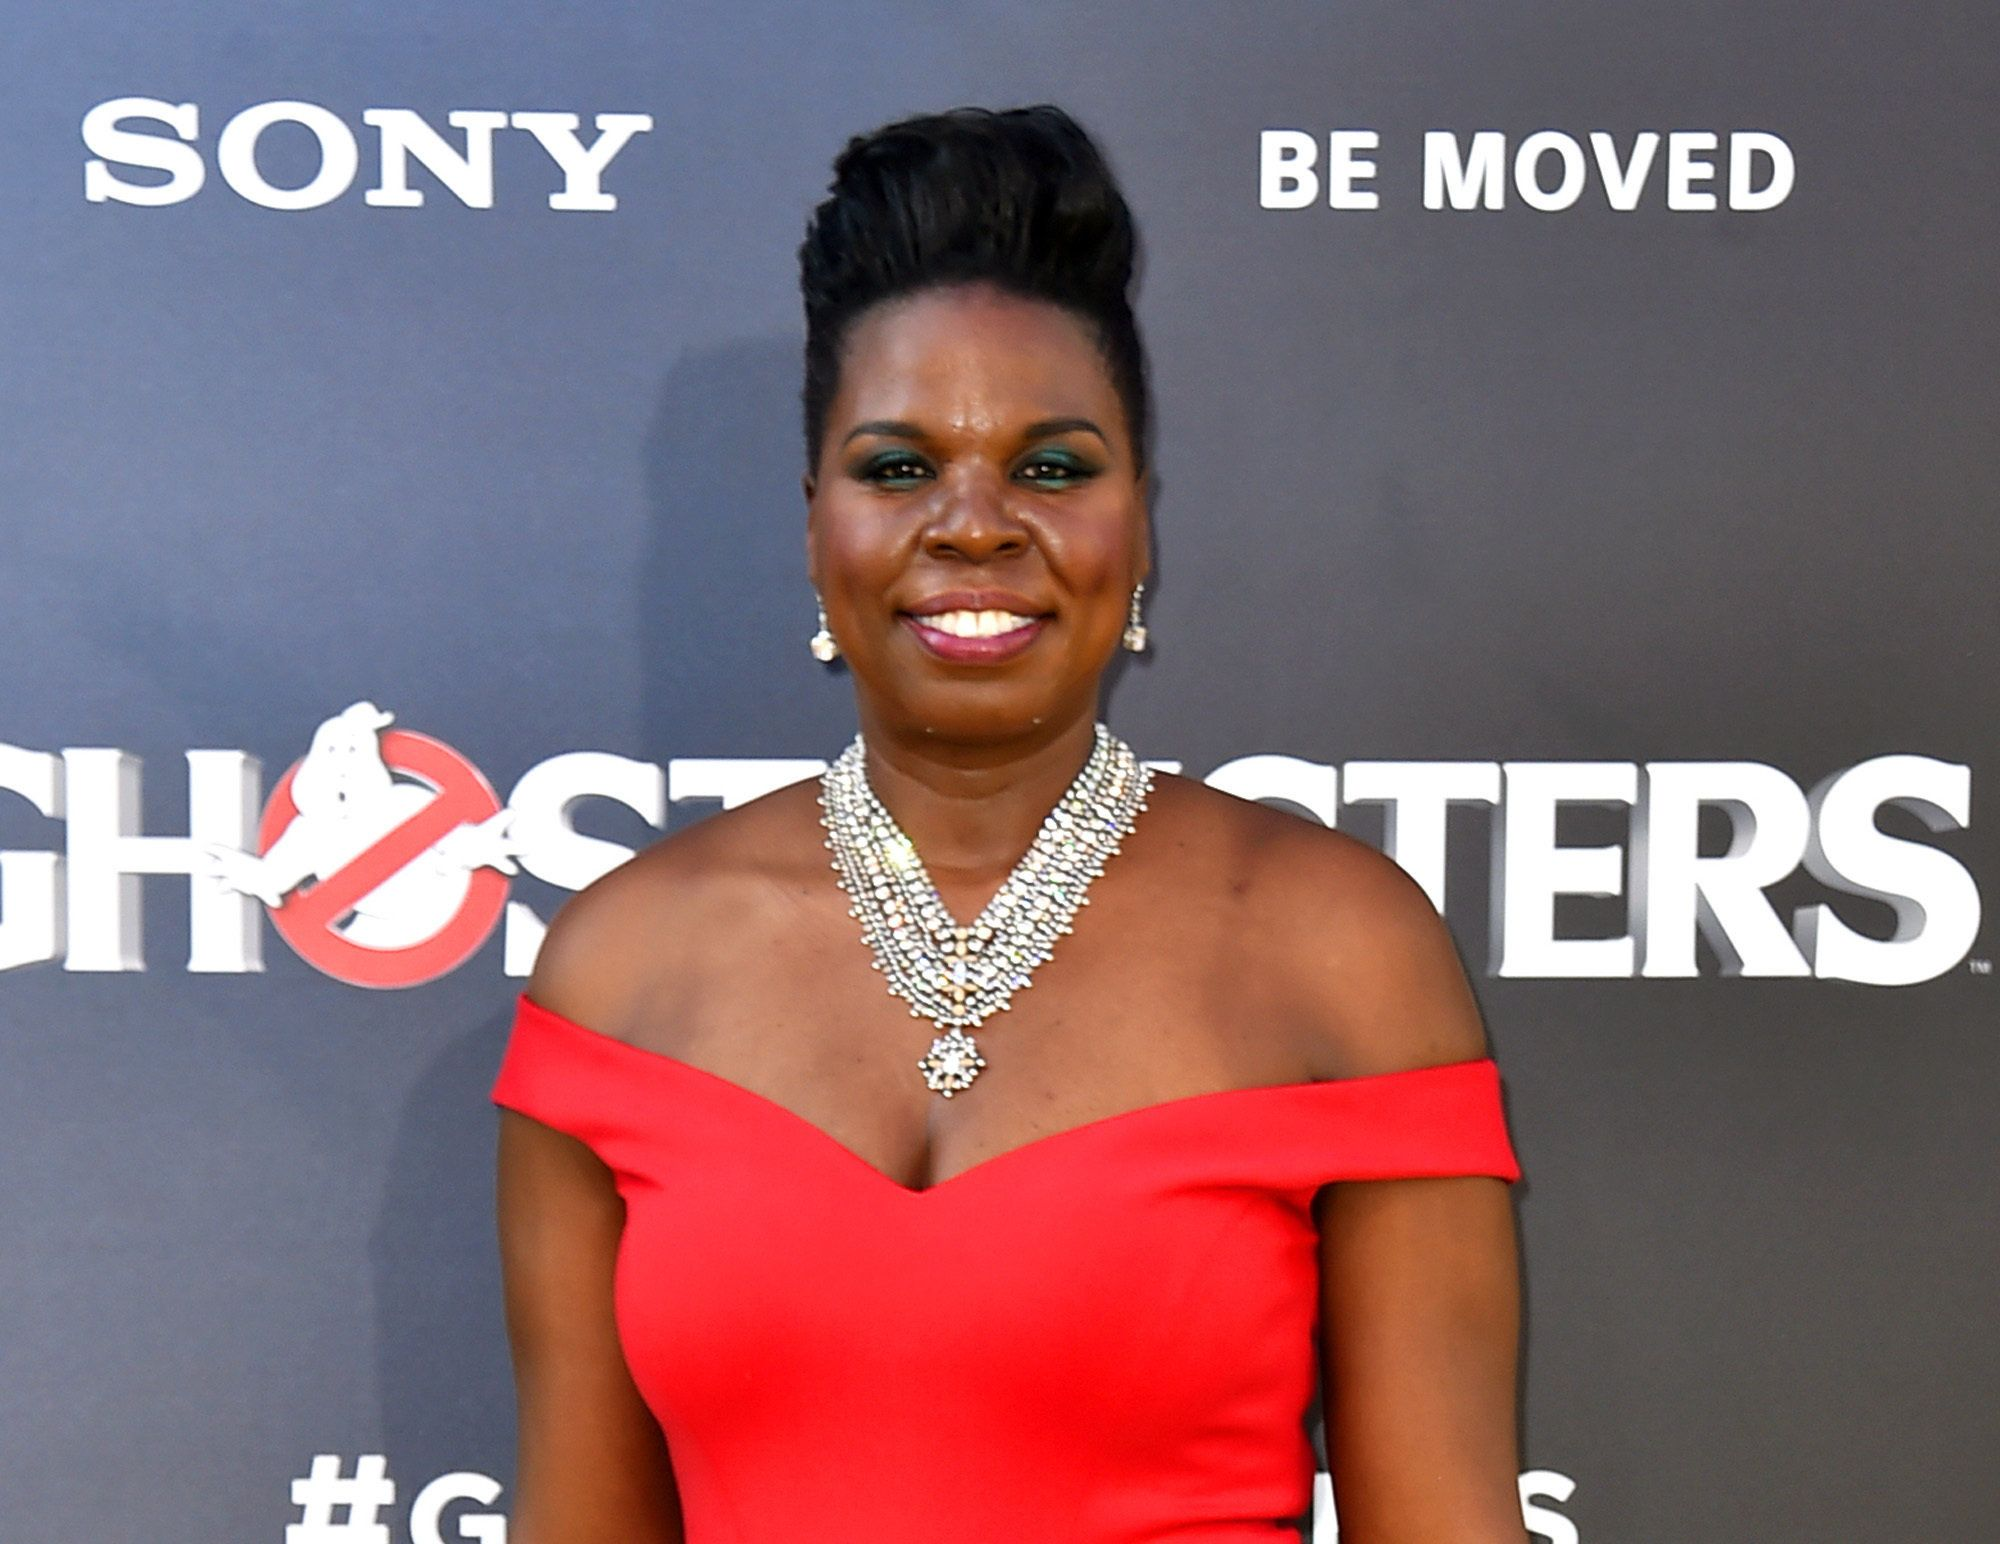 """FILE - In this July 9, 2016 file photo, Leslie Jones arrives at the Los Angeles premiere of """"Ghostbusters."""" 'Ghostbusters' and 'Saturday Night Live' star Jones is joining NBC's team at the Olympics in Rio, NBC announced on Monday, Aug. 8. NBC's top producer invited Jones after seeing a serious of cheerleading tweets she sent about the Olympic games .(Photo by Jordan Strauss/Invision/AP, File)"""